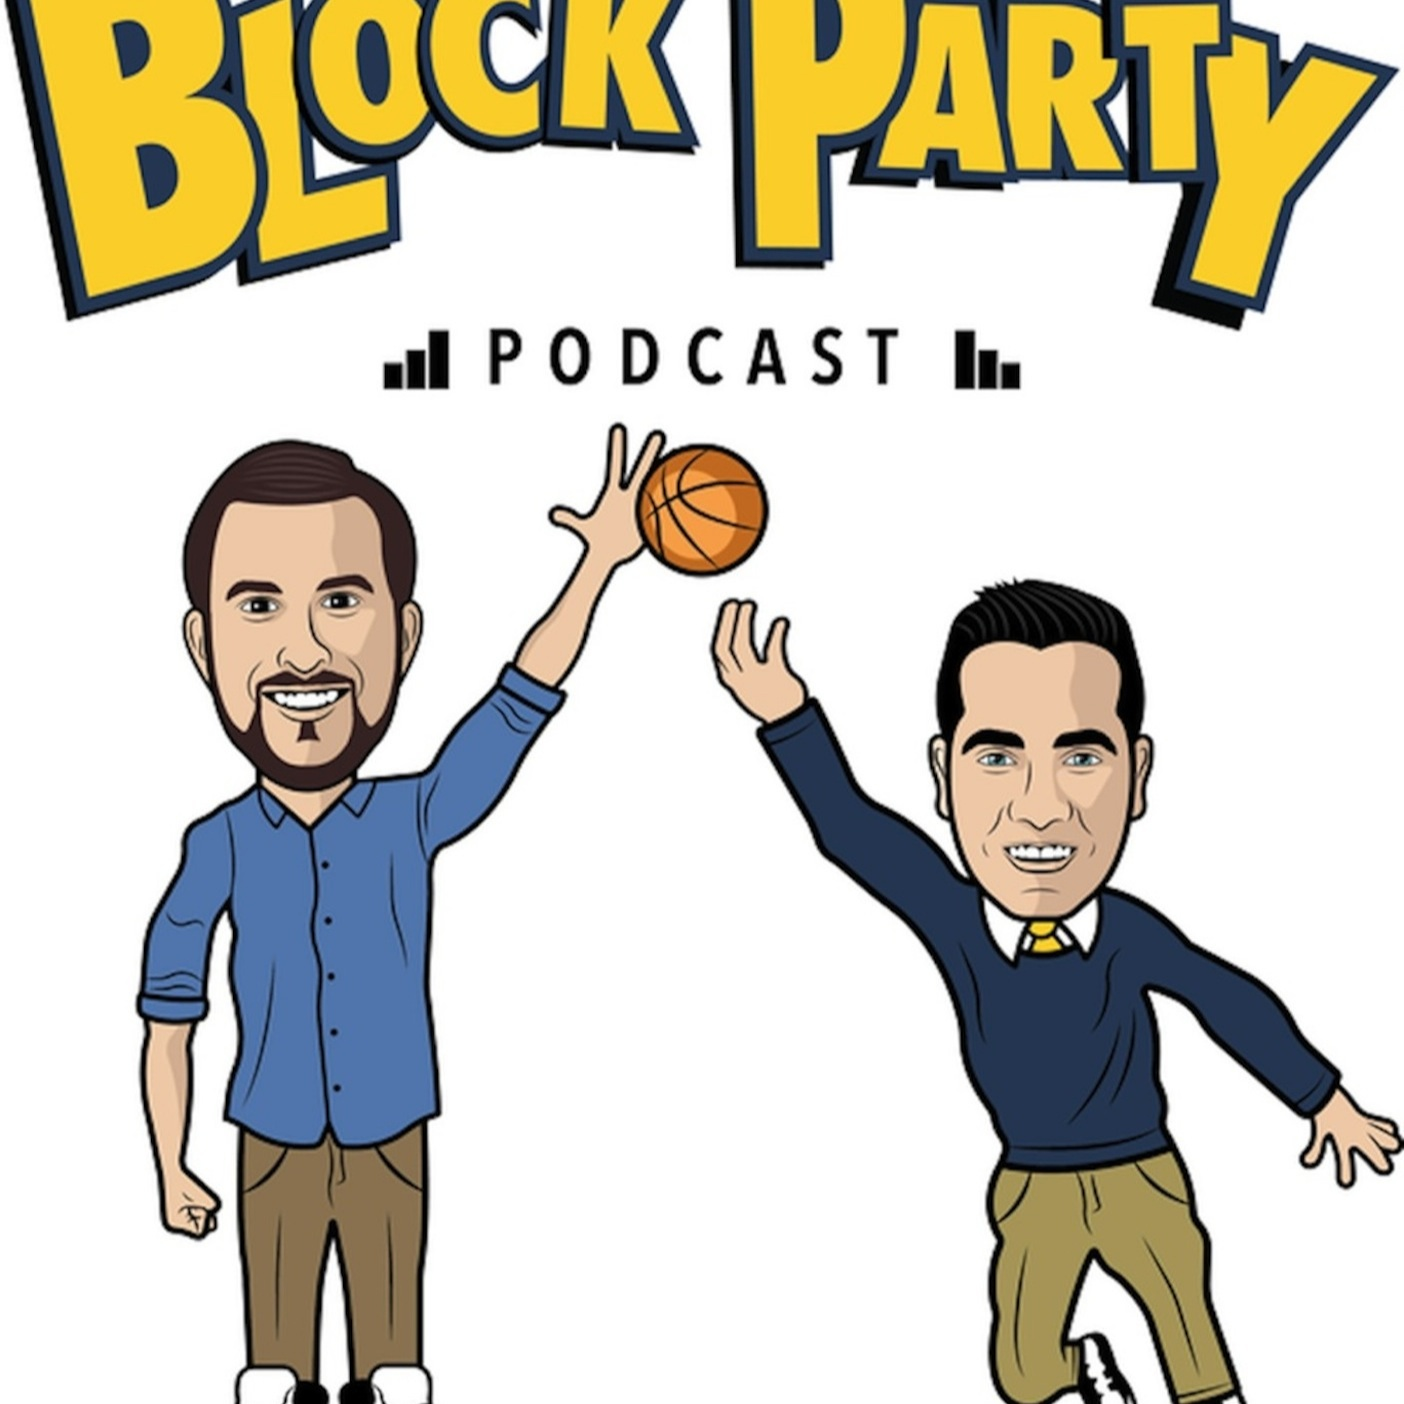 Block Party Podcast